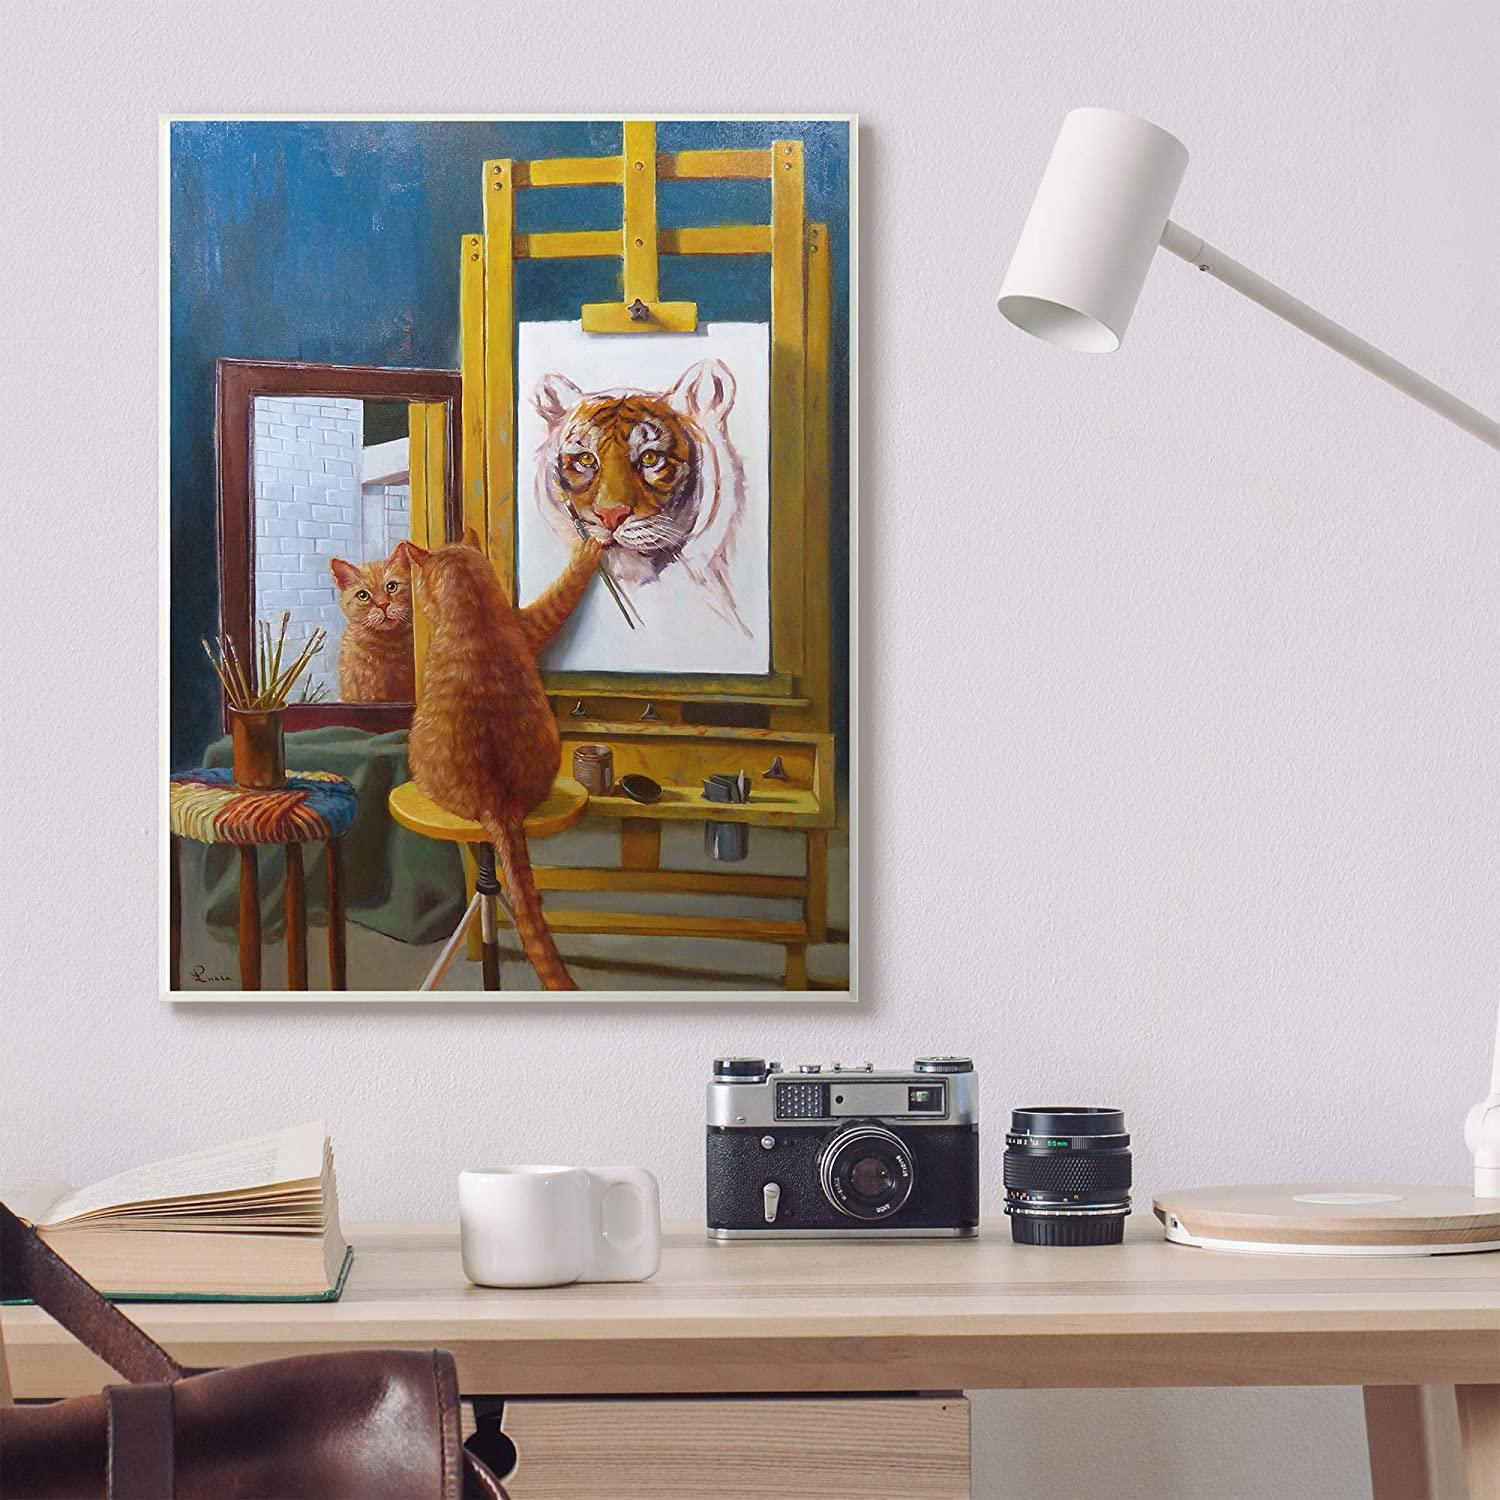 The Stupell Home D/écor Collection Cat Confidence Self Portrait as a Tiger Funny Painting Stretched Canvas Wall Art 16 x 20 Multi-Color